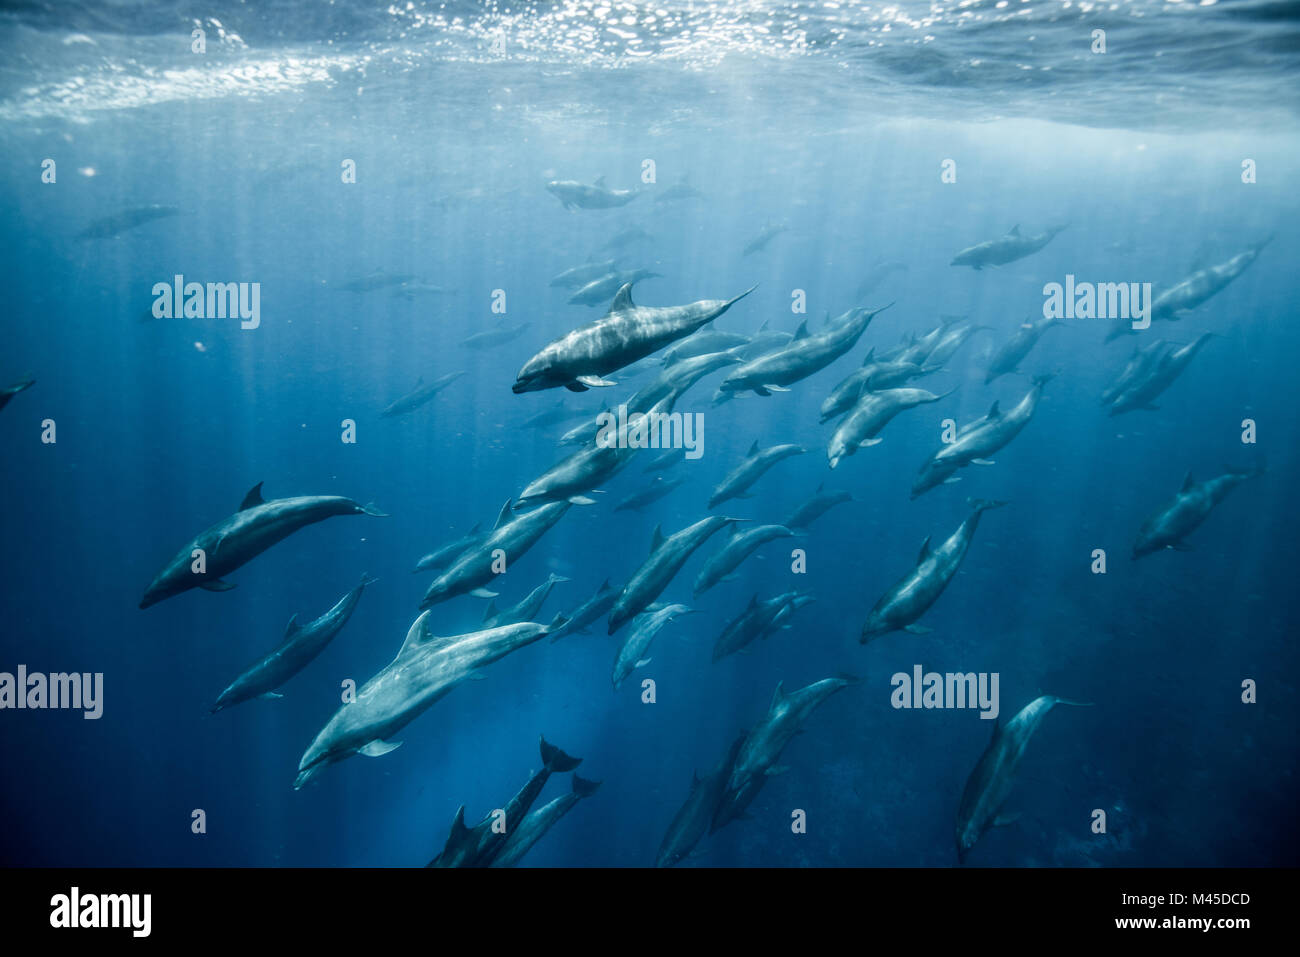 Large group of bottlenose dolphins, Seymour, Galapagos, Ecuador, South America - Stock Image